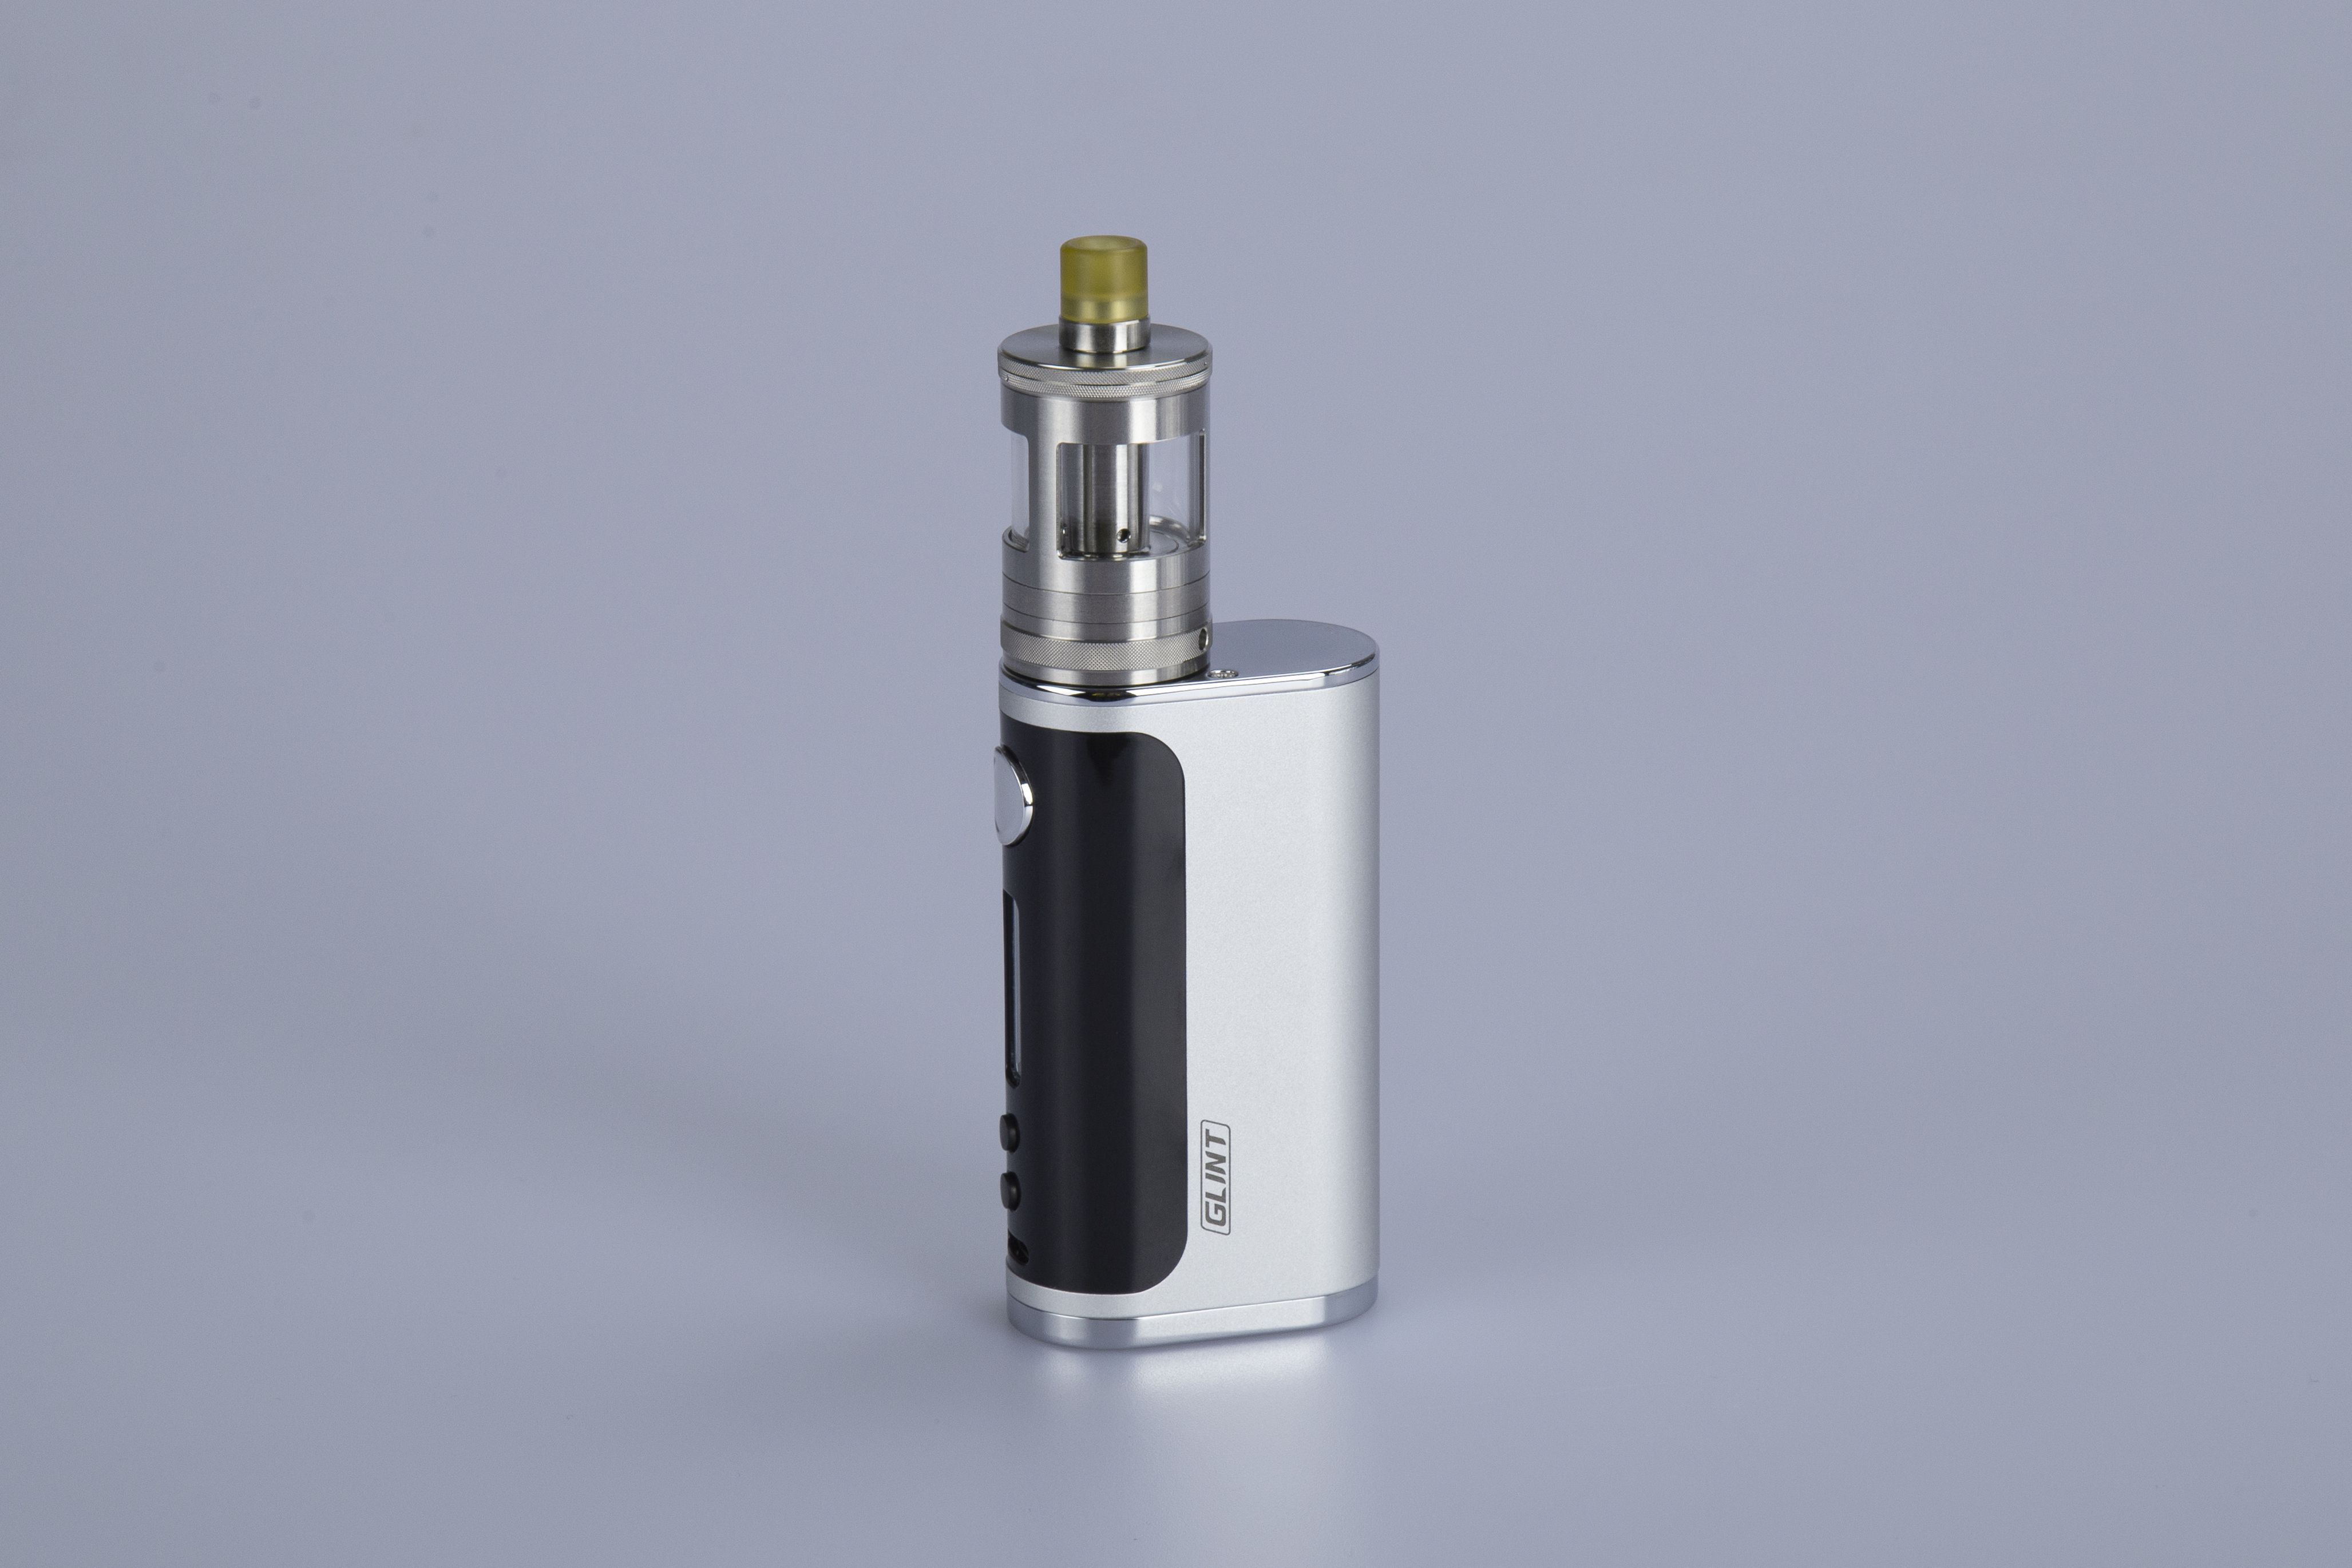 Pin On Aspire Product Family